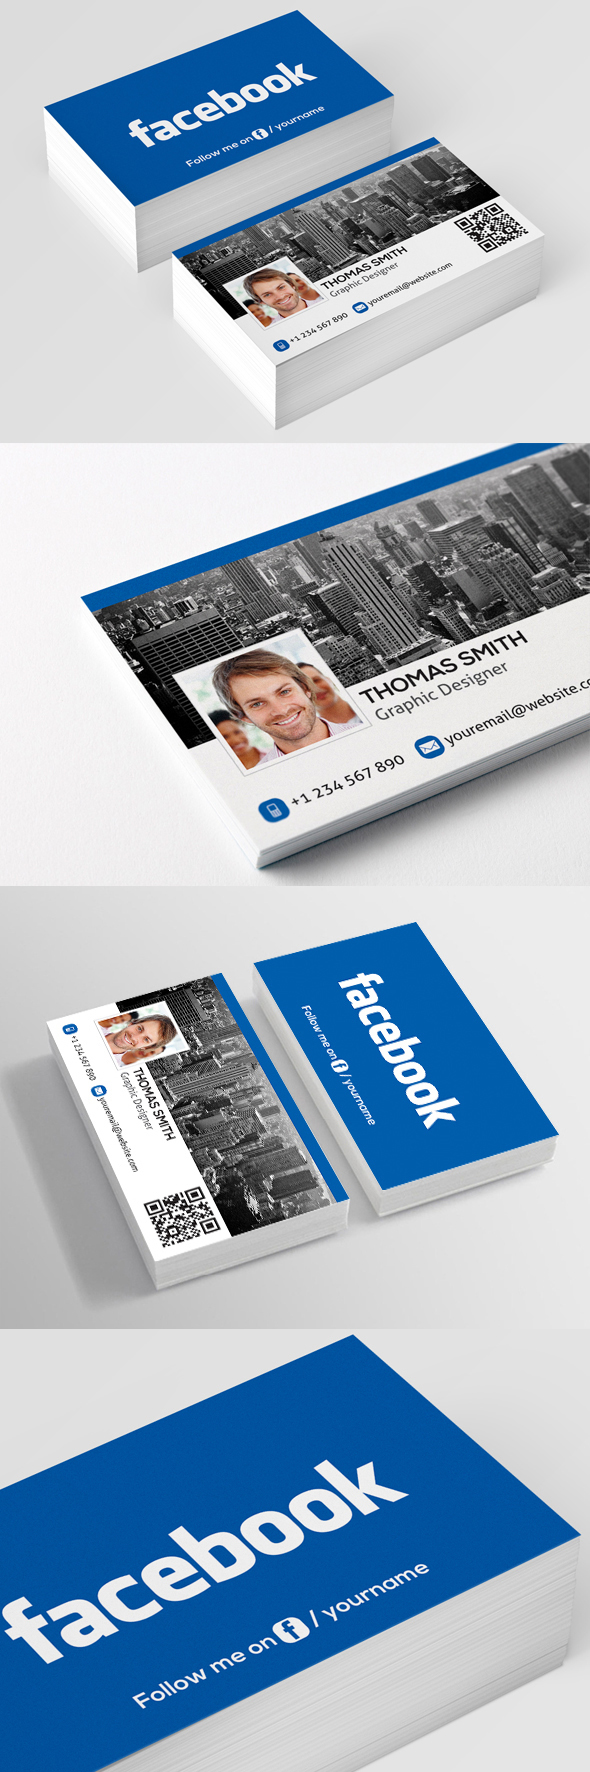 Interesting free facebook business card template with qr code interesting free facebook business card template with qr code available for download as psd file reheart Image collections